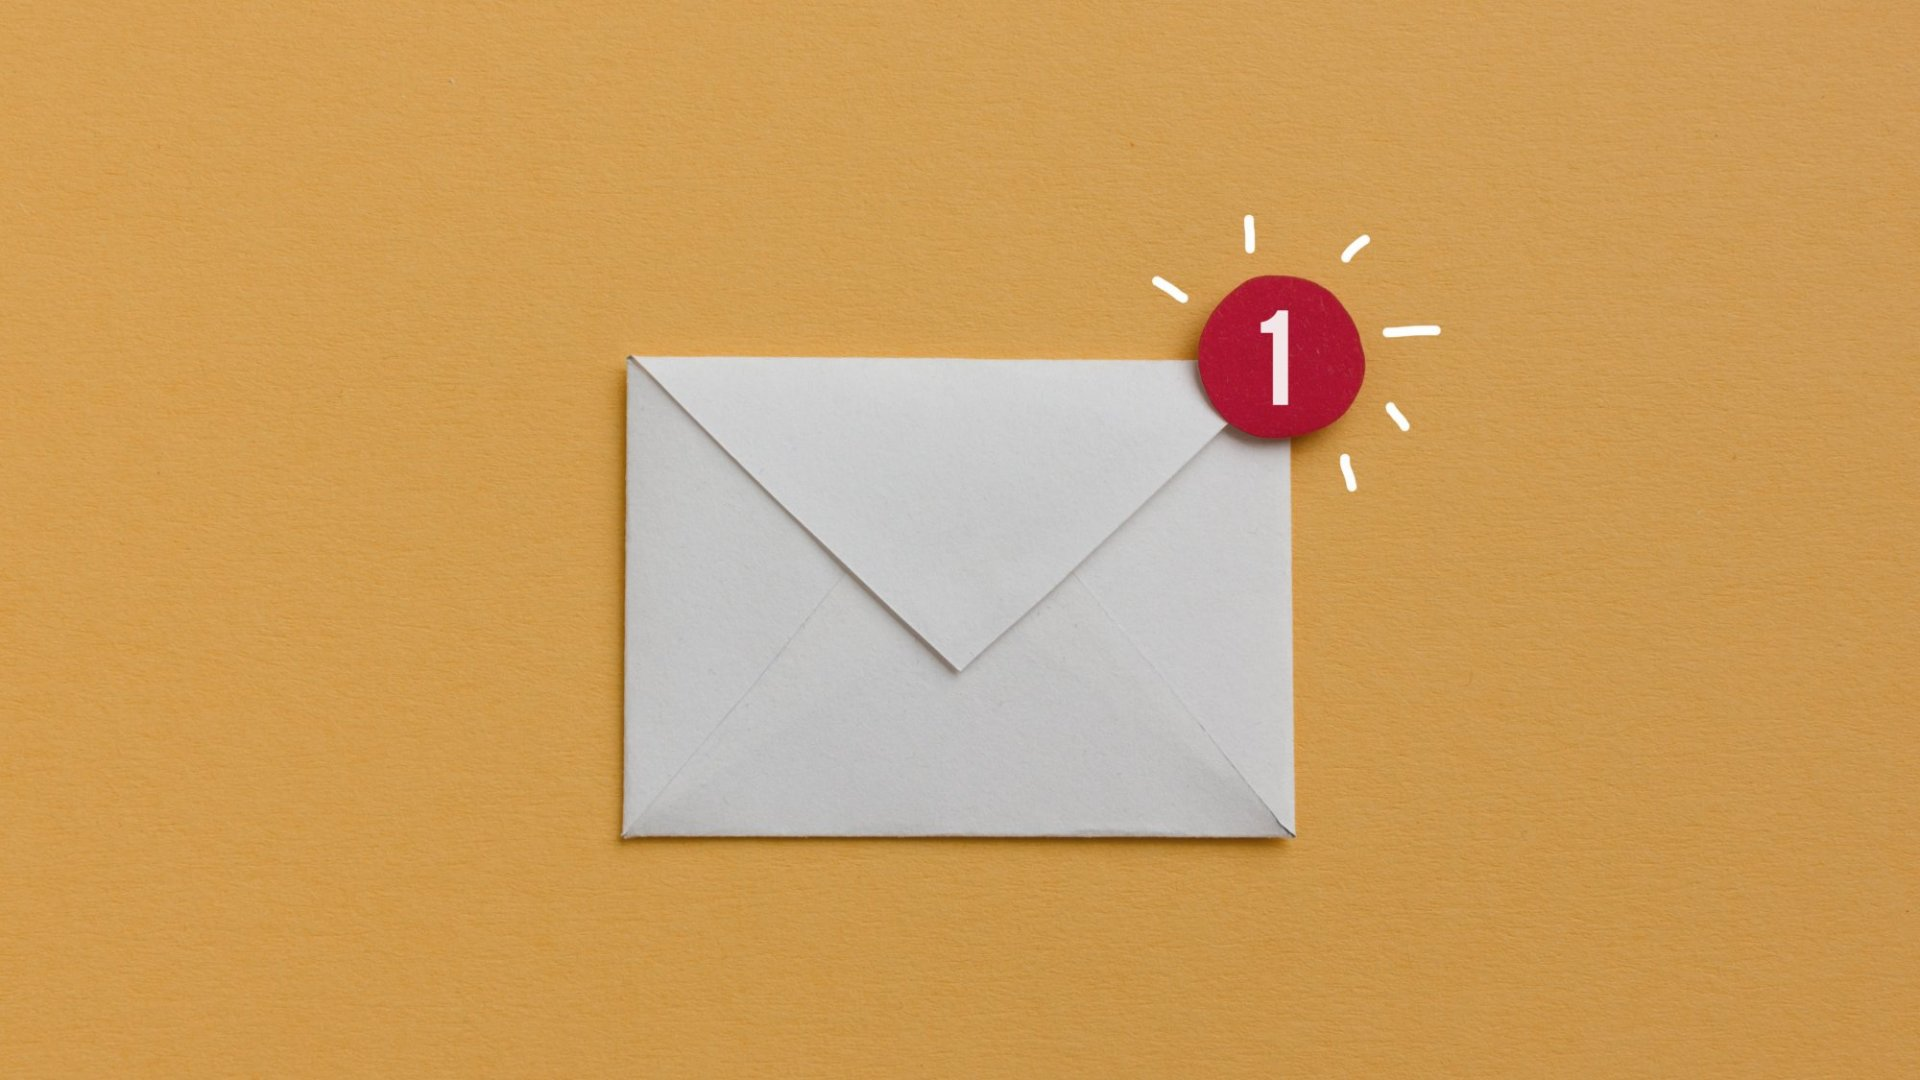 Sending a Pitch Deck to Investors? Make Sure It Has These 12 Things